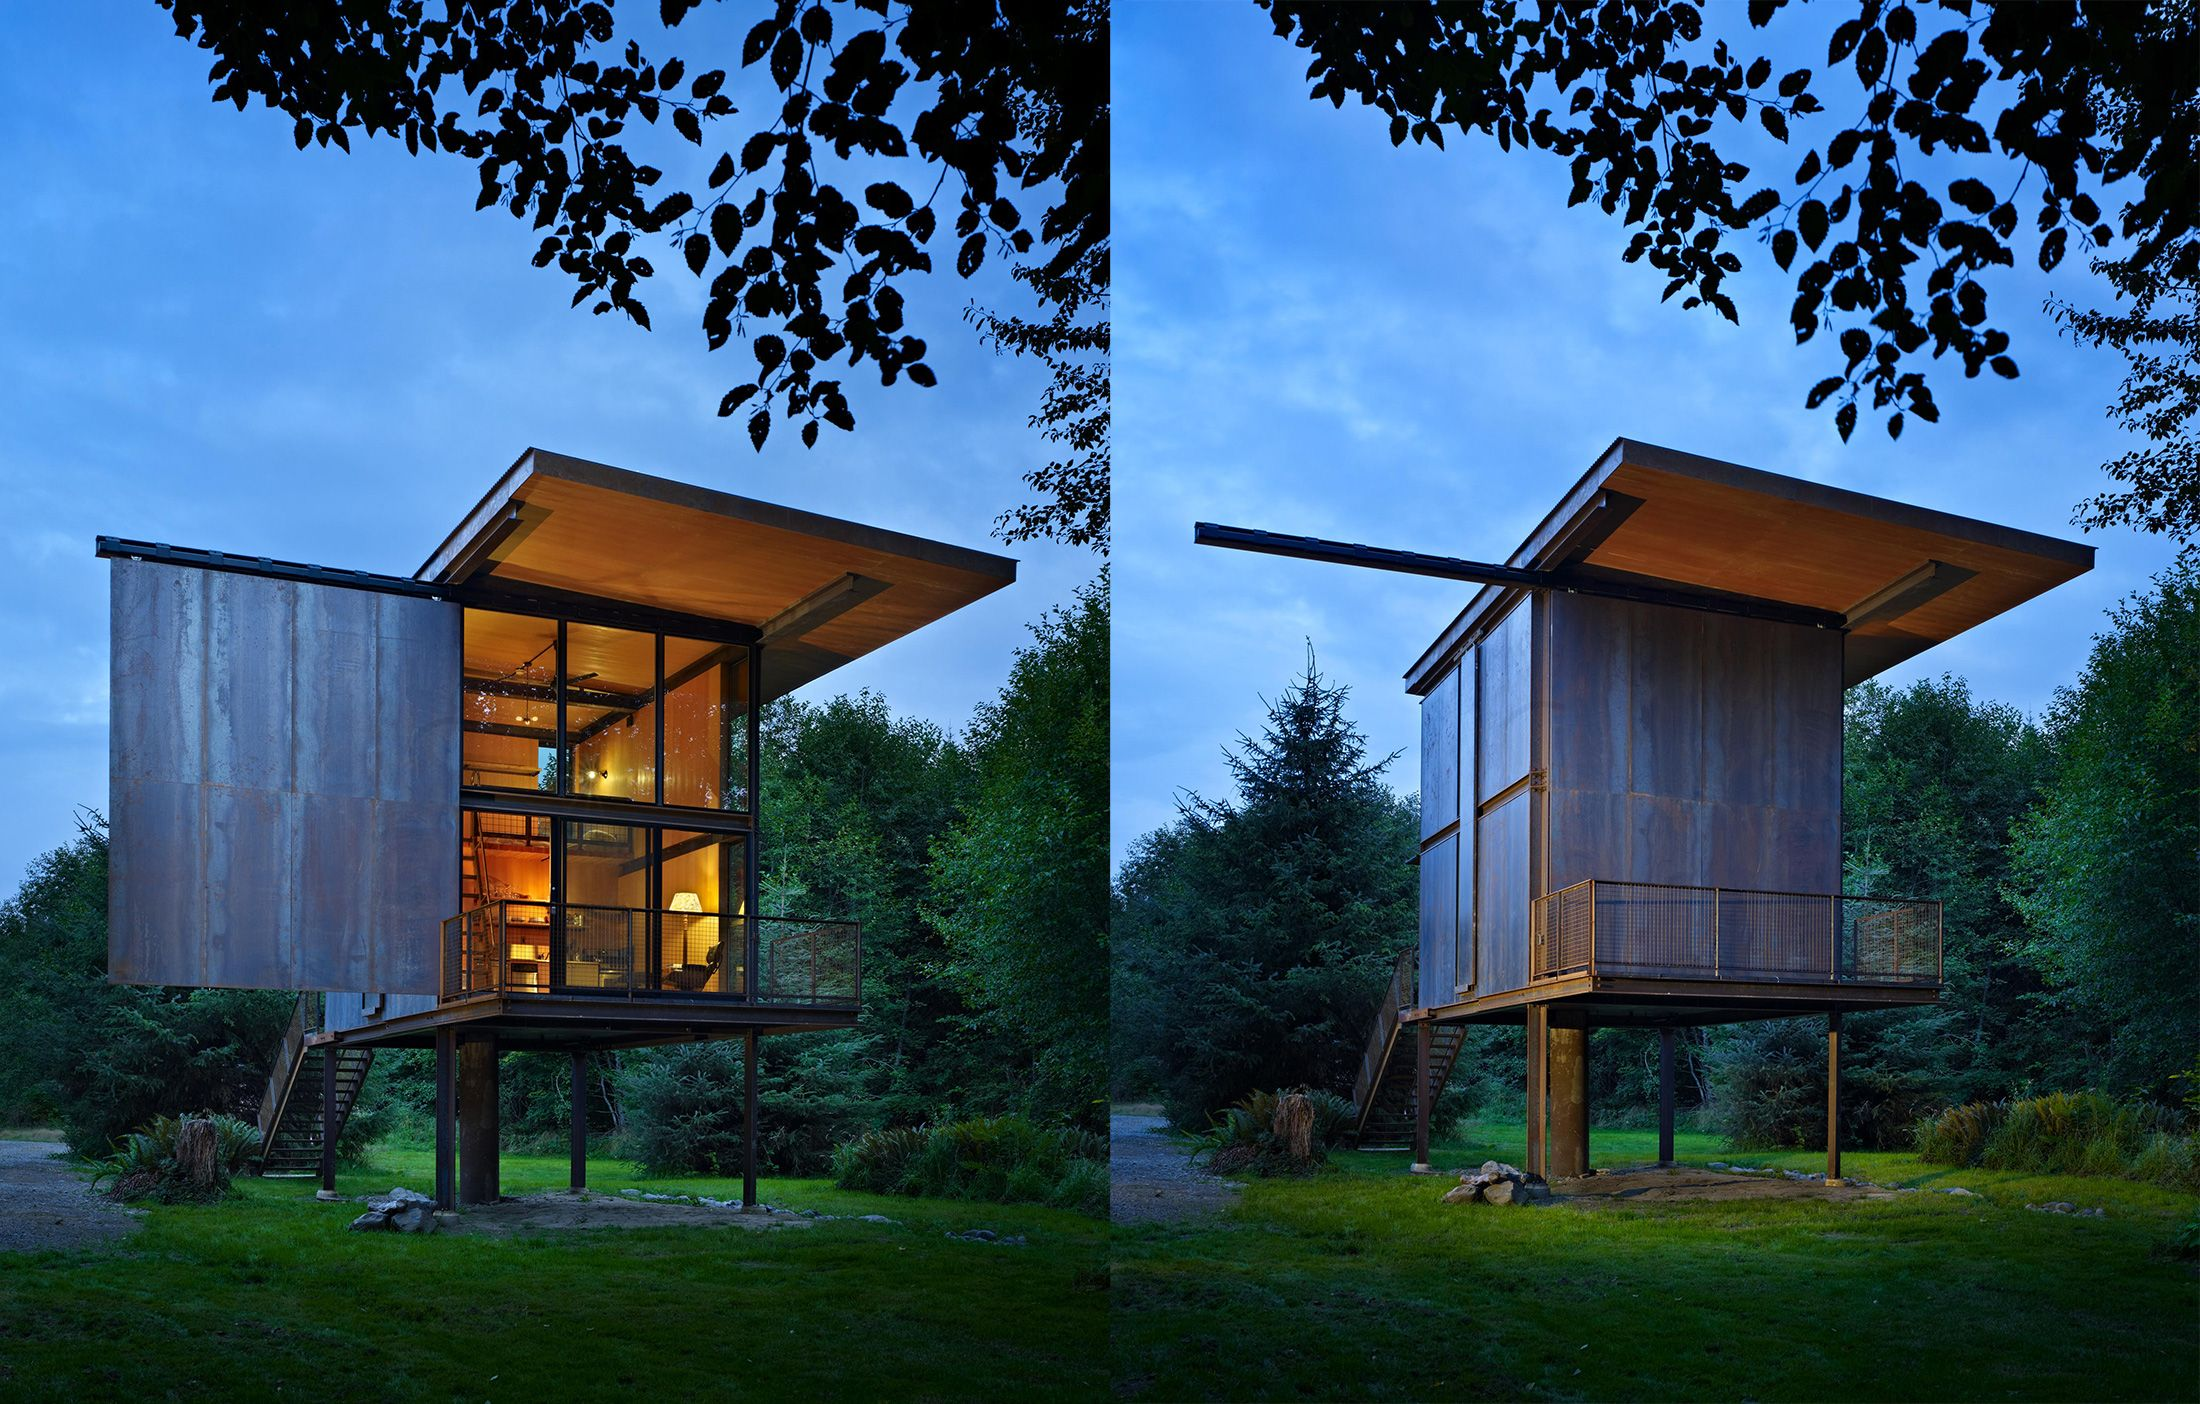 This Steel Cabin Could Survive a Zombie Apocalypse on minecraft hut design, defensive house design, coach house design, zombie apocalypse house, hurricane proof house design, guard house design, zombie protection house, earthquake resistant building design, fortified house design, oban & 2 by agushi workroom design, native house design, underground concrete house design, minimal house design, modern bunker design, earthquake proof house design, home design, zombie cakes design, best underground bunker design,